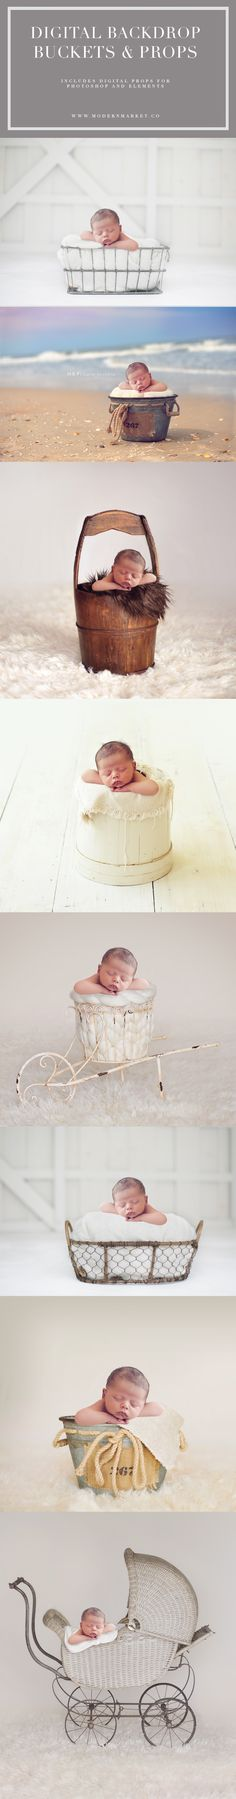 The BEST digital backdrops with props! So easy to change up your images. Newborn photography digital backdrops. The newborn is the exact same in every single picture! www.modernmarket.co